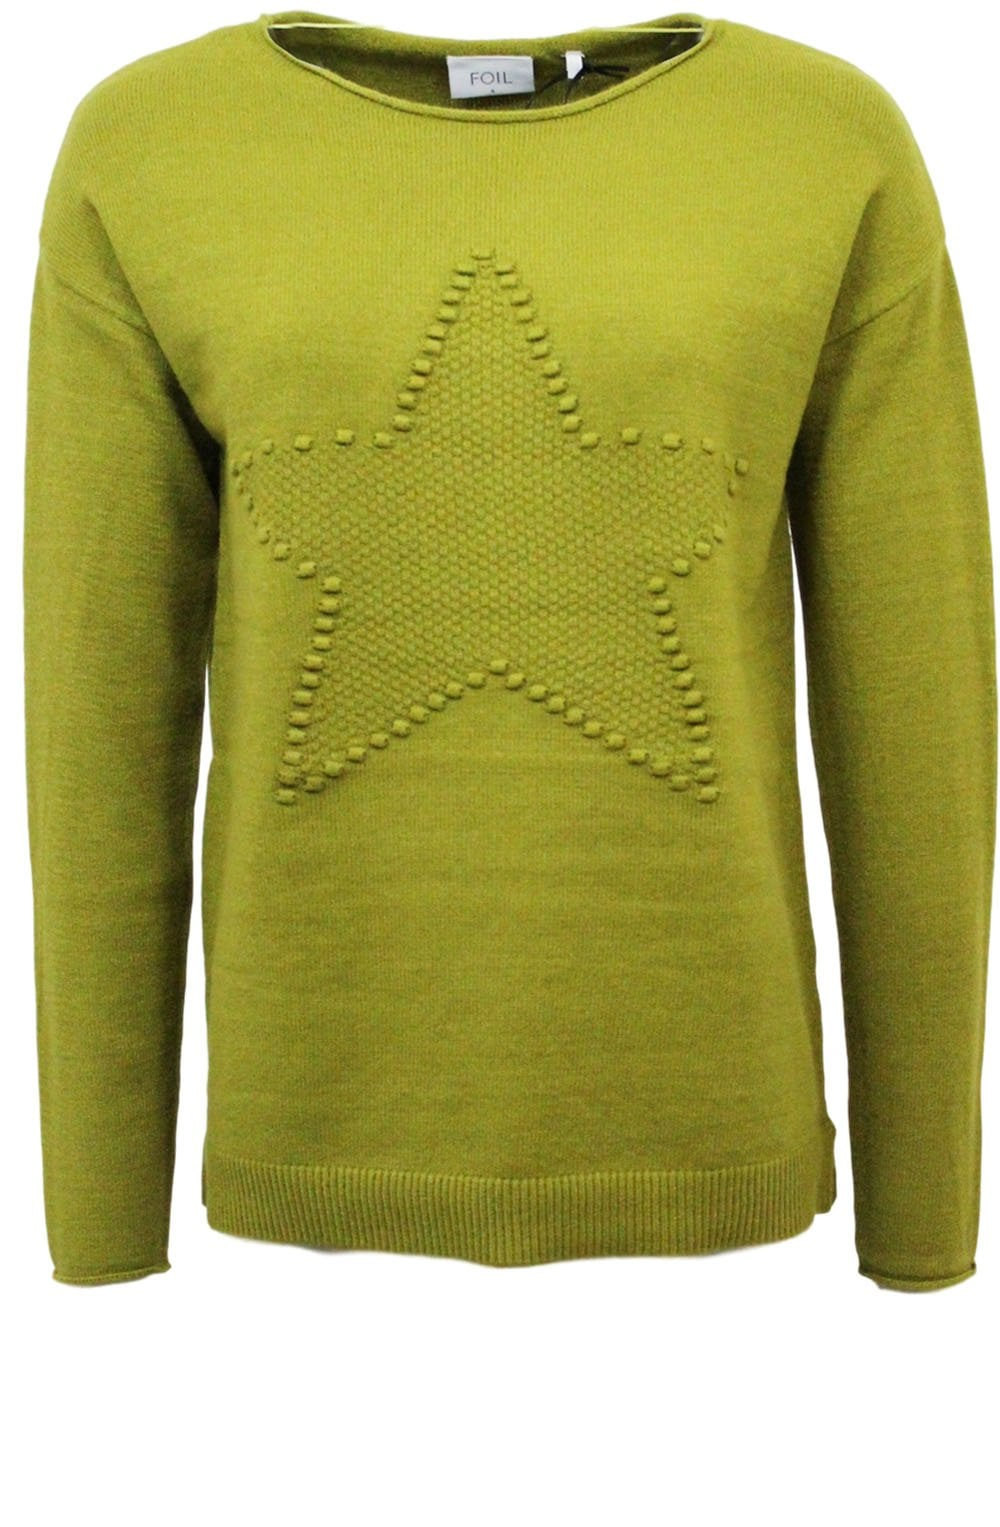 Foil Star Performer sweater in Grassy